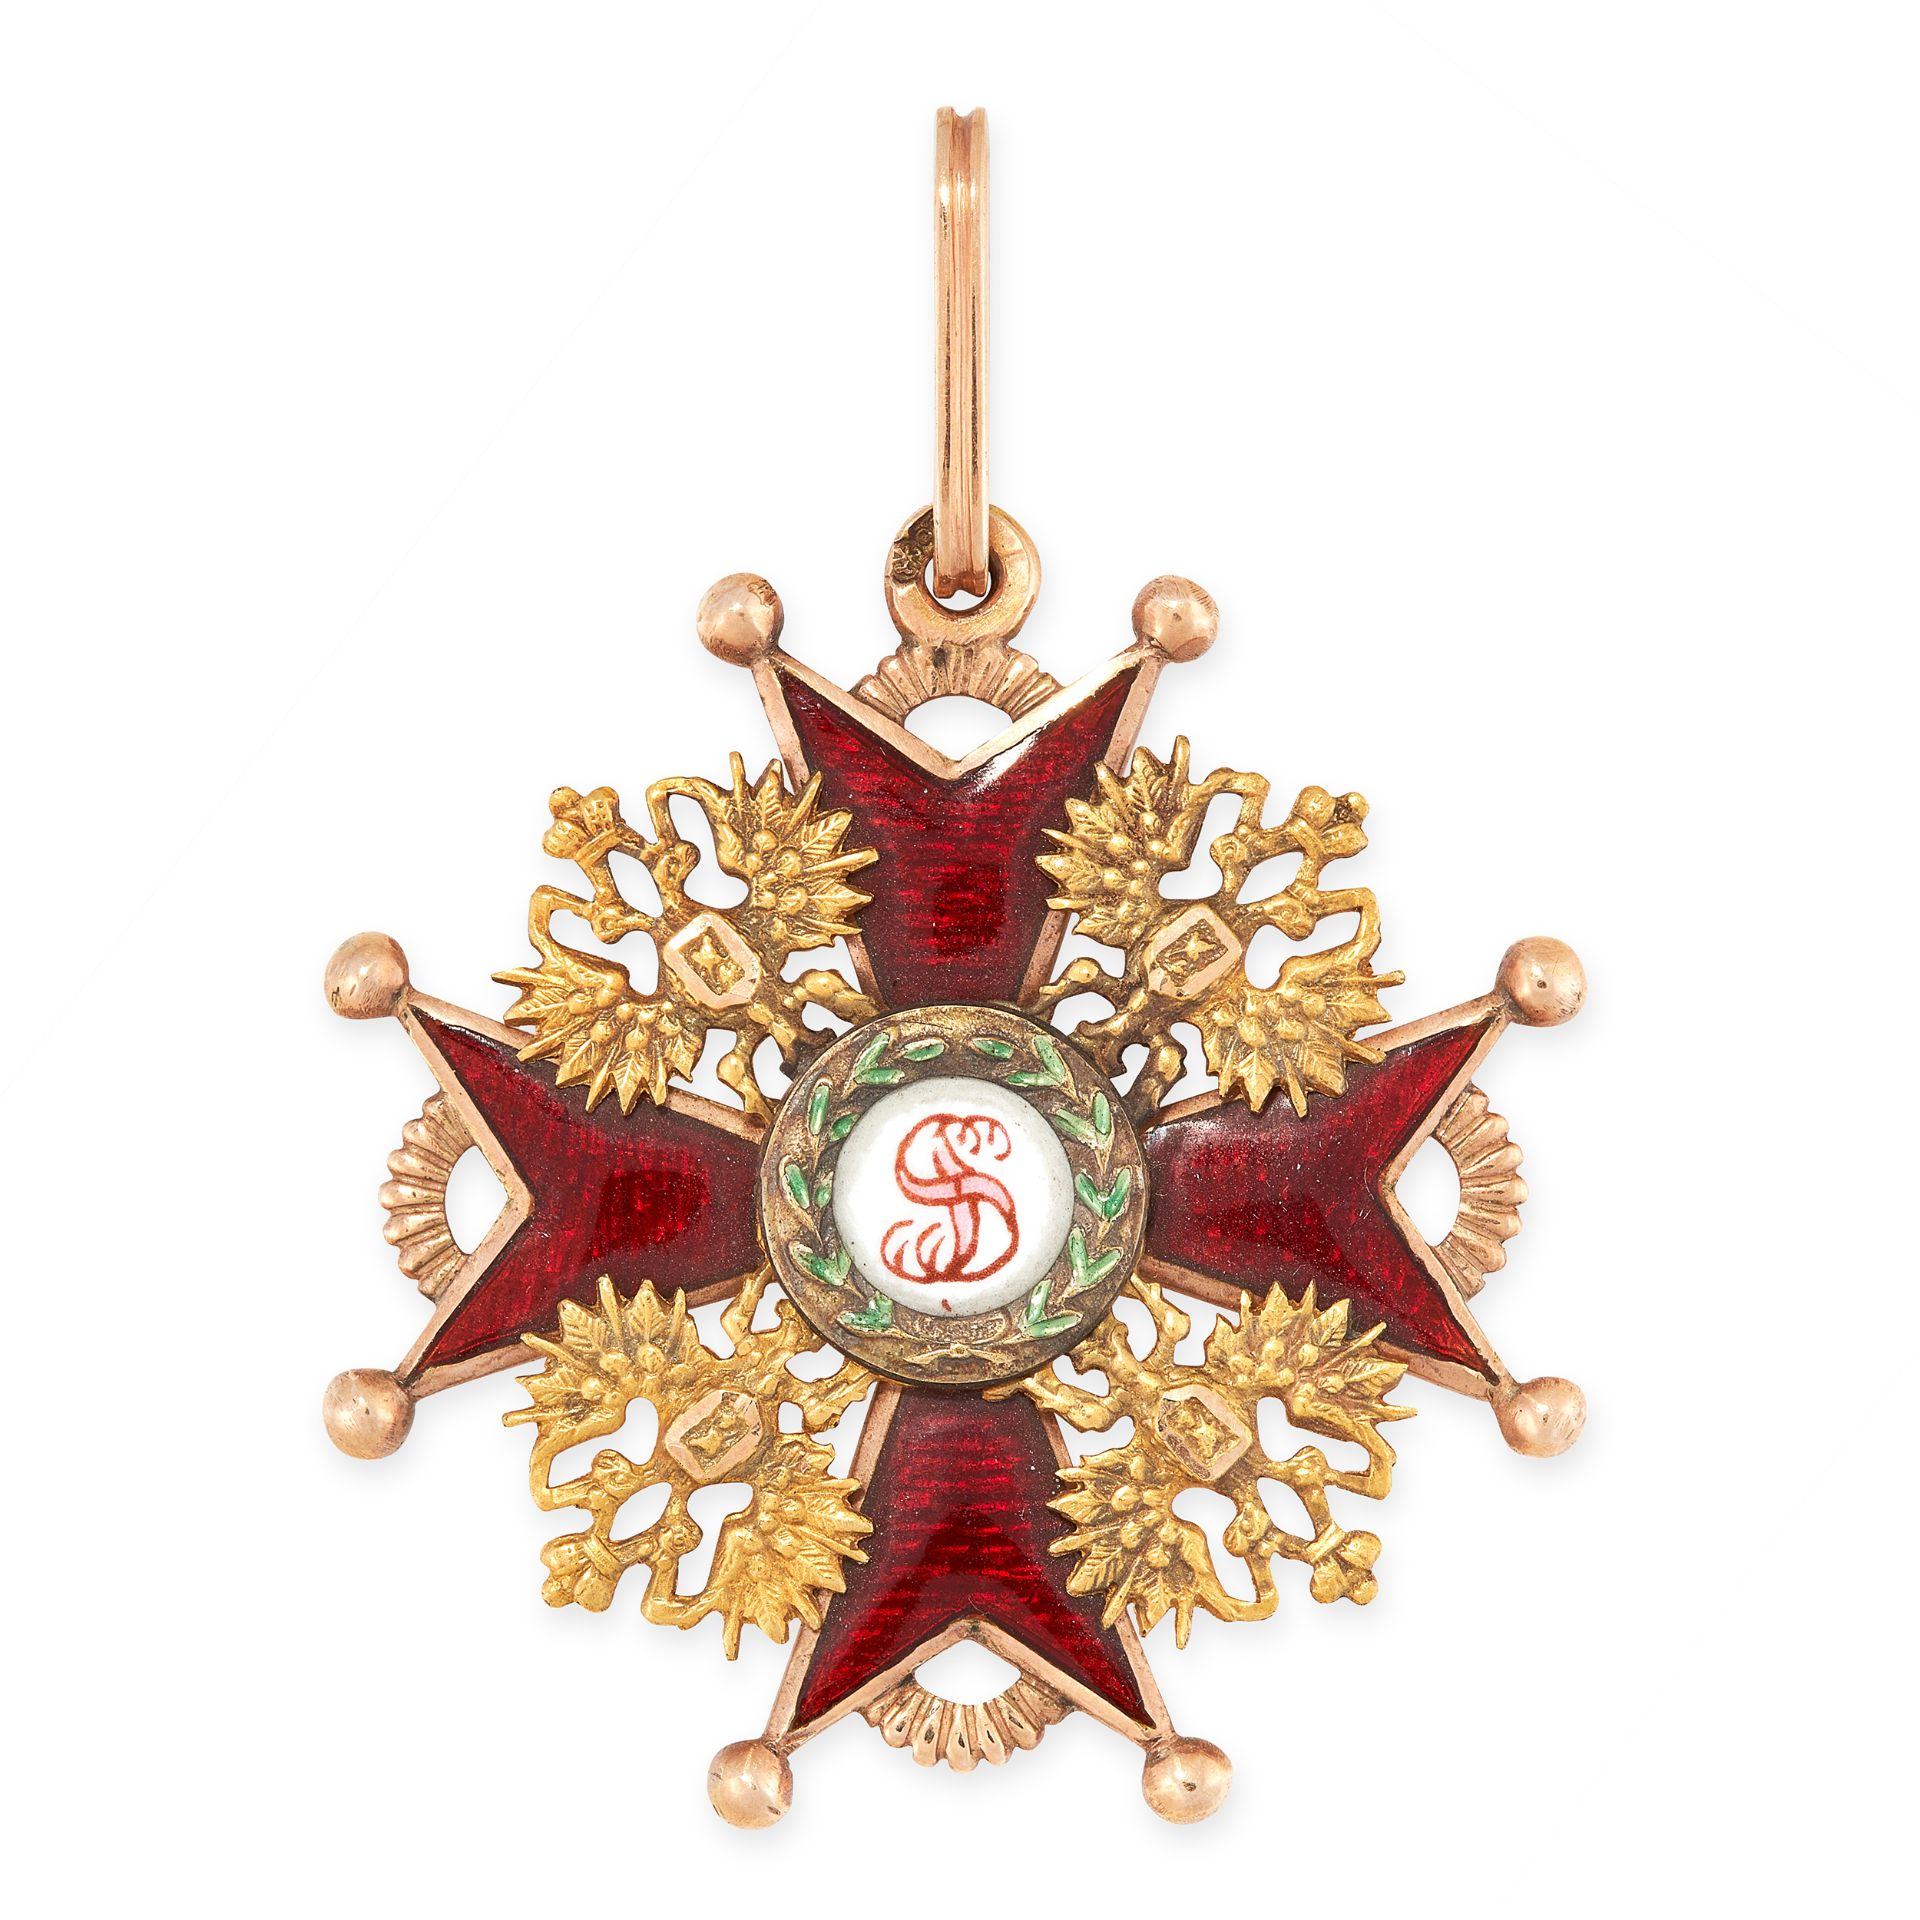 AN ANTIQUE IMPERIAL RUSSIAN ENAMEL ORDER OF ST STANISLAS MEDAL in 56 zolotnik gold, of the third